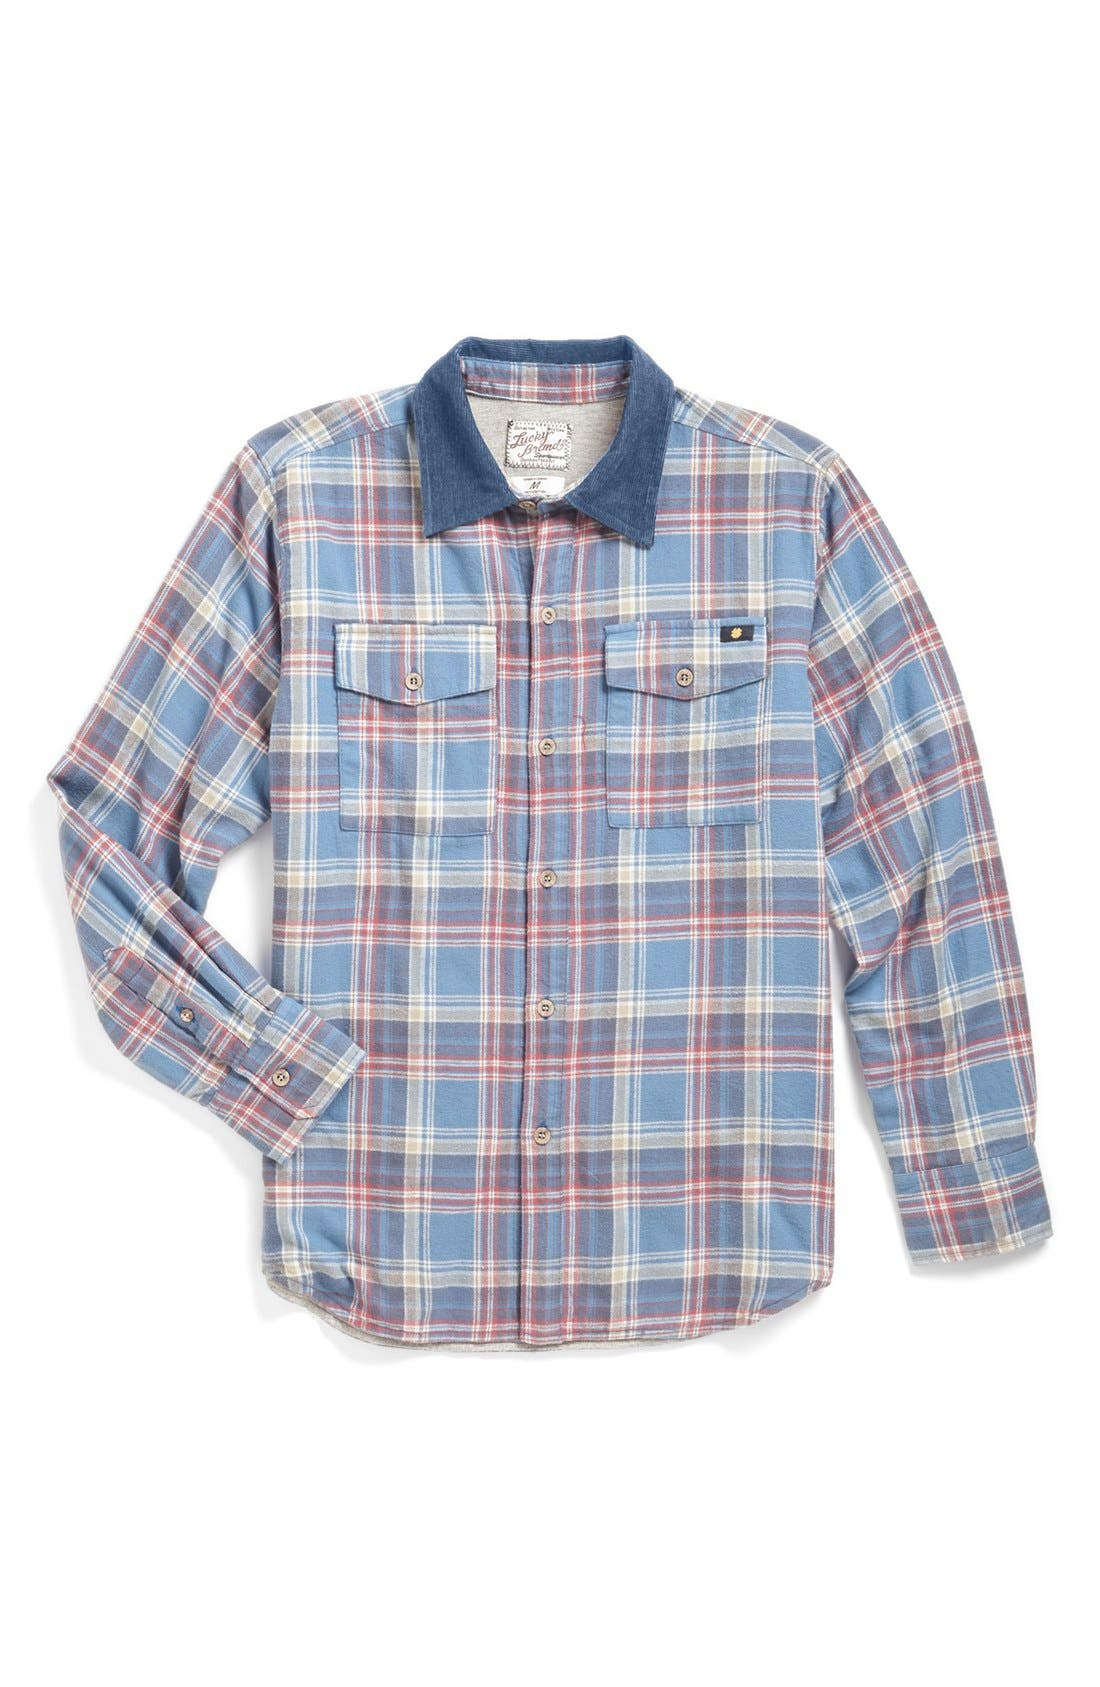 Alternate Image 1 Selected - Lucky Brand 'Rolling Thunder' Shirt Jacket (Big Boys)